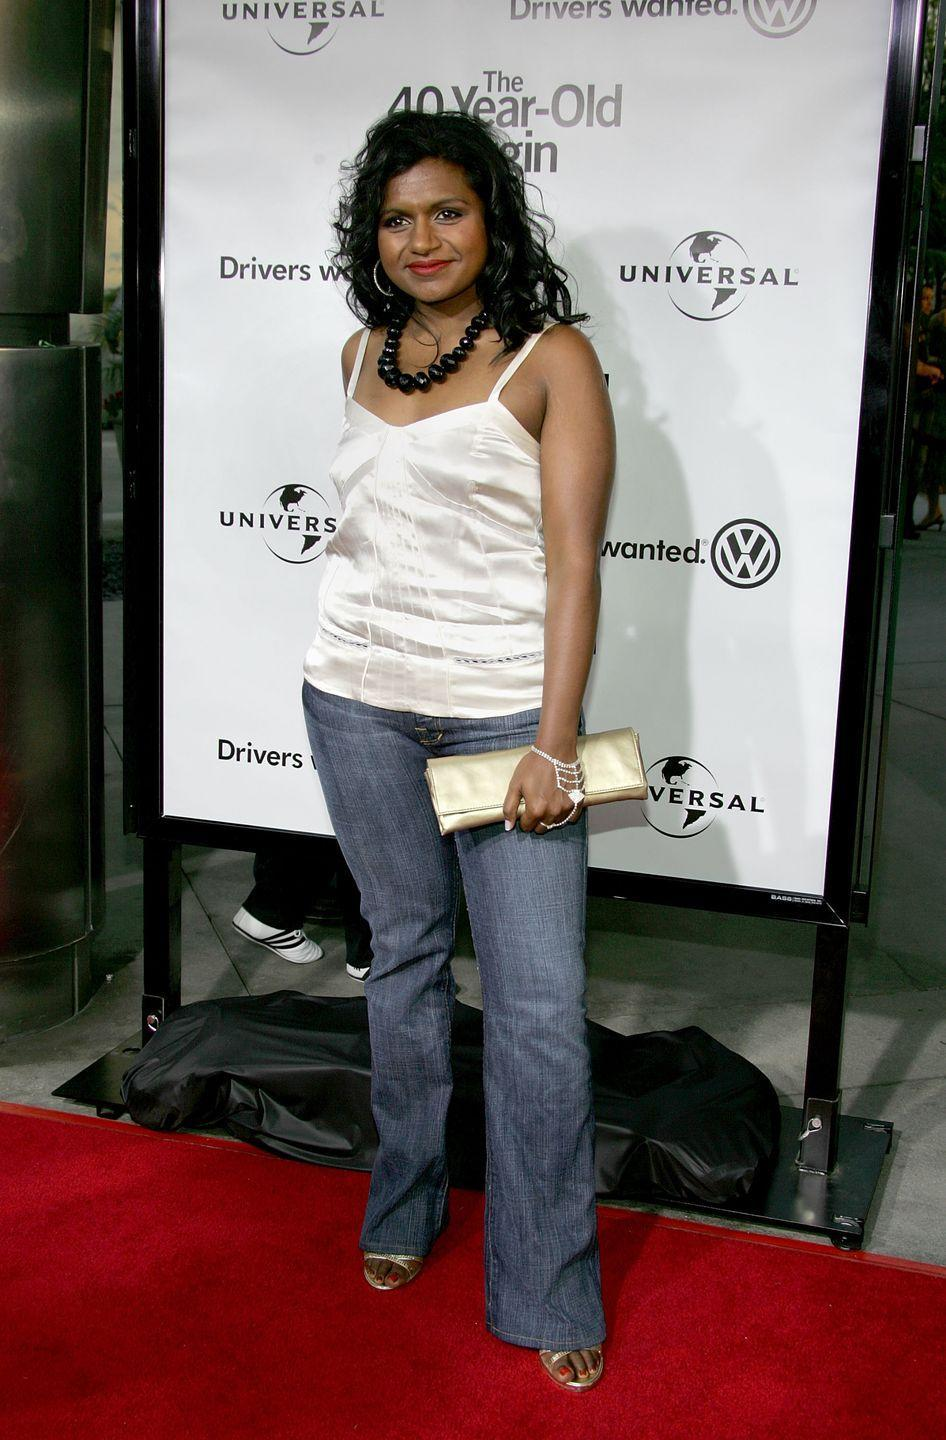 <p>Mindy gussied up in a satin top, wide-leg jeans, and an extra chunky necklace for the premiere of <em>The 40-Year-Old Virgin</em>.</p>